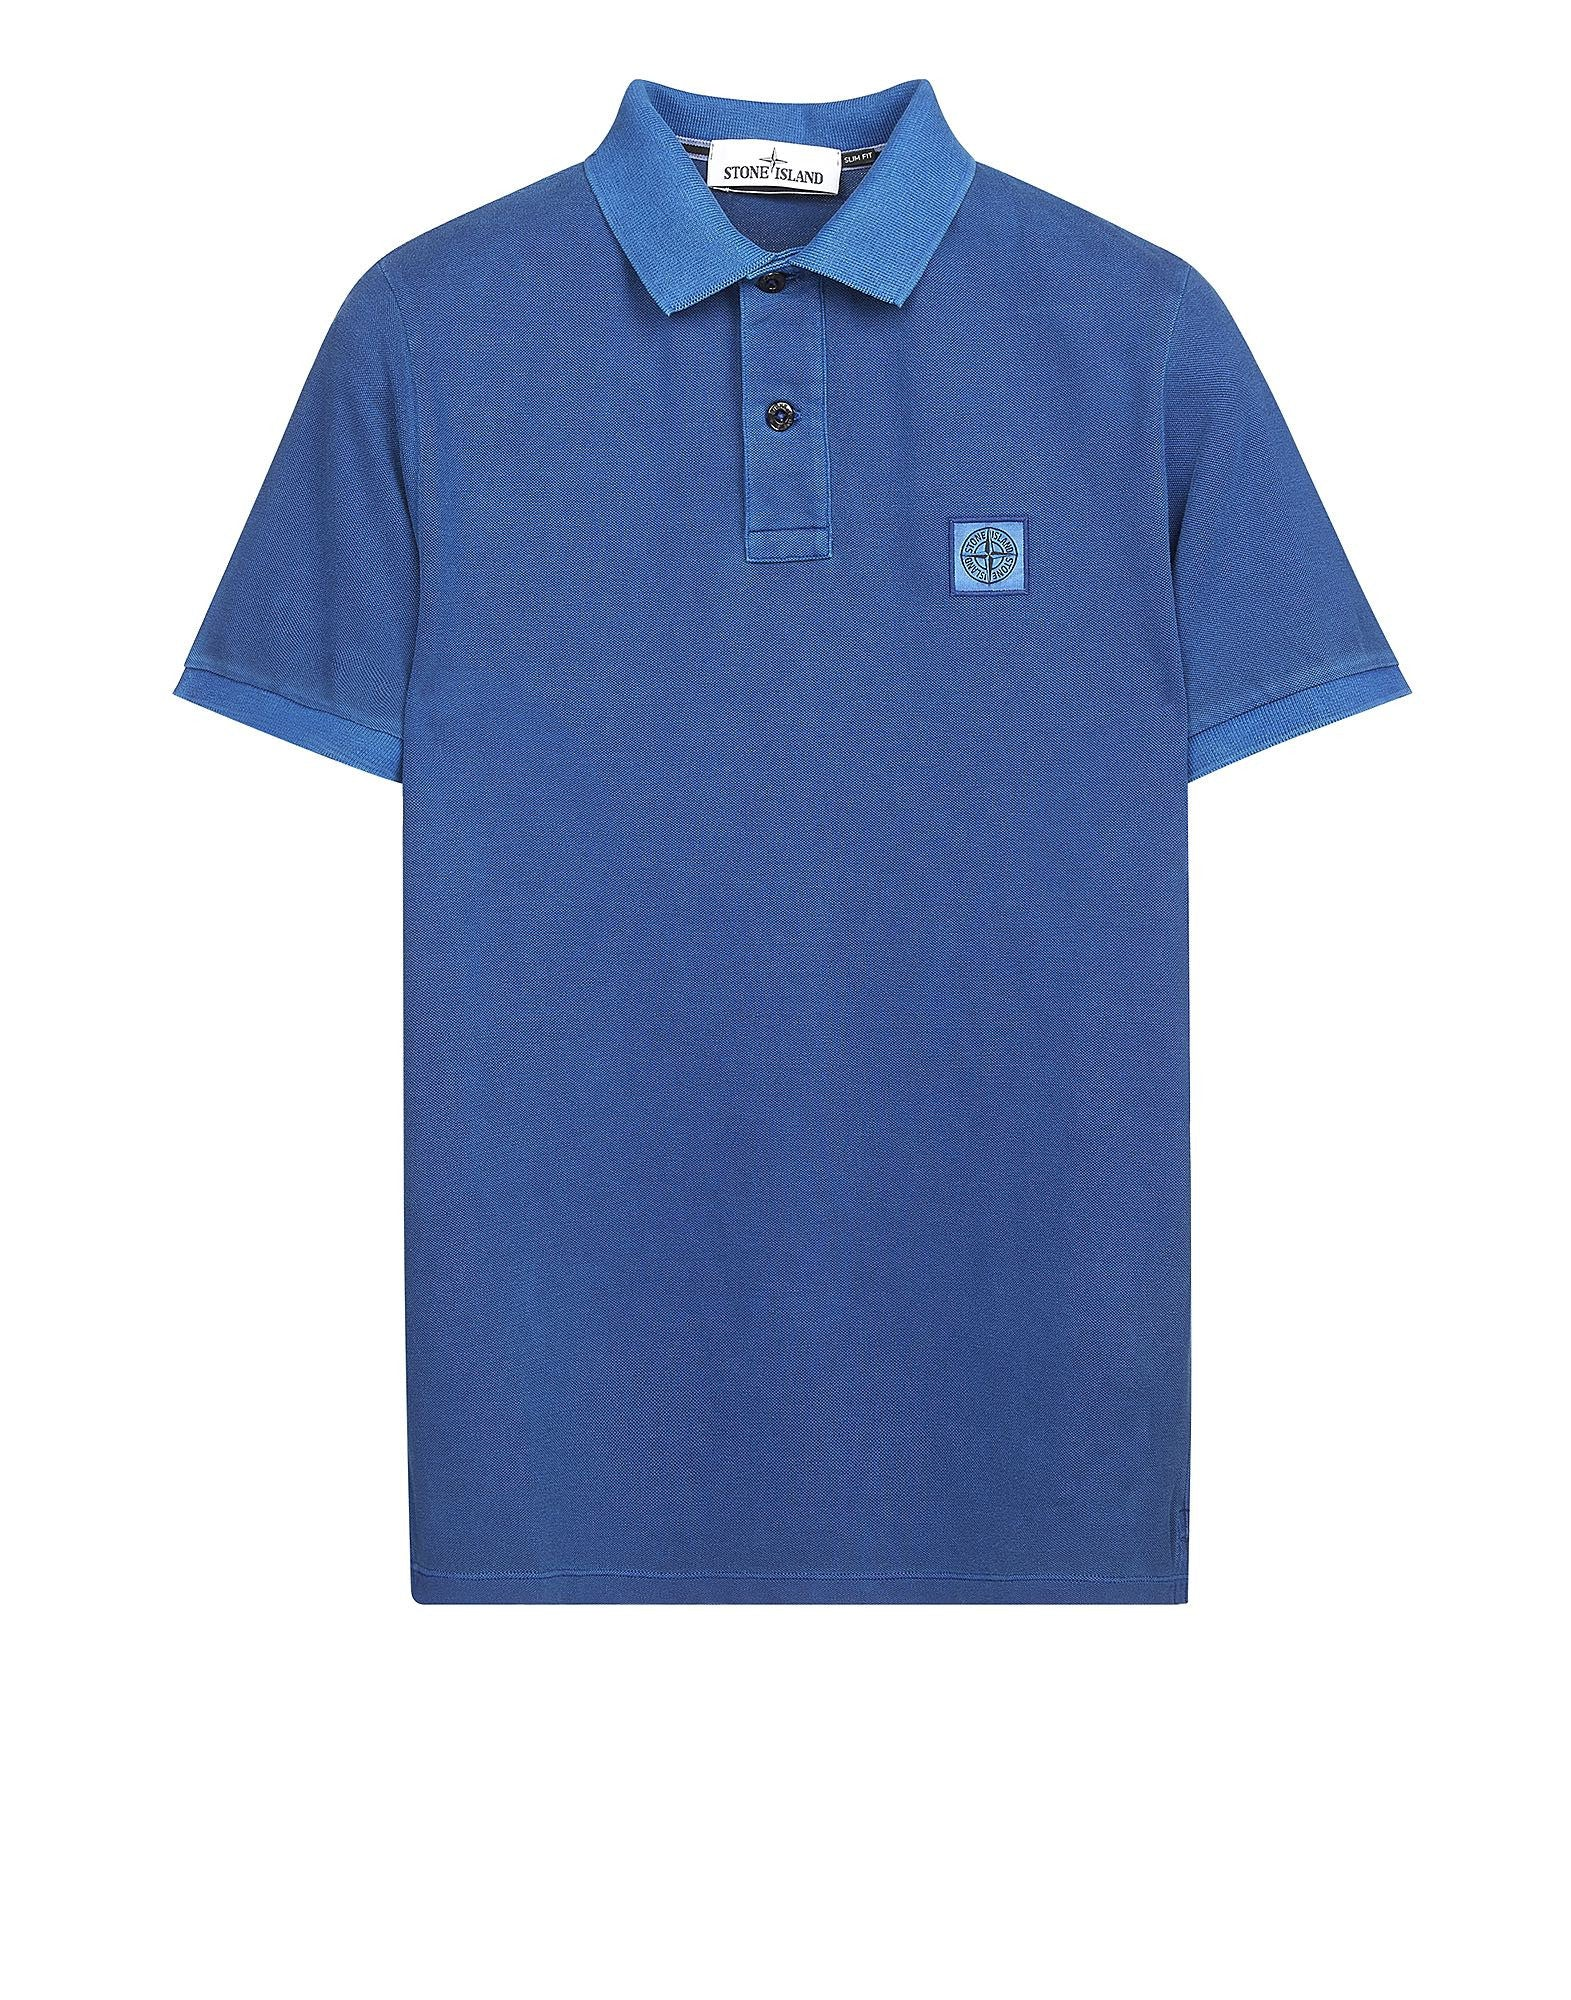 22S67 PIGMENT TREATED Polo Shirt in Blue